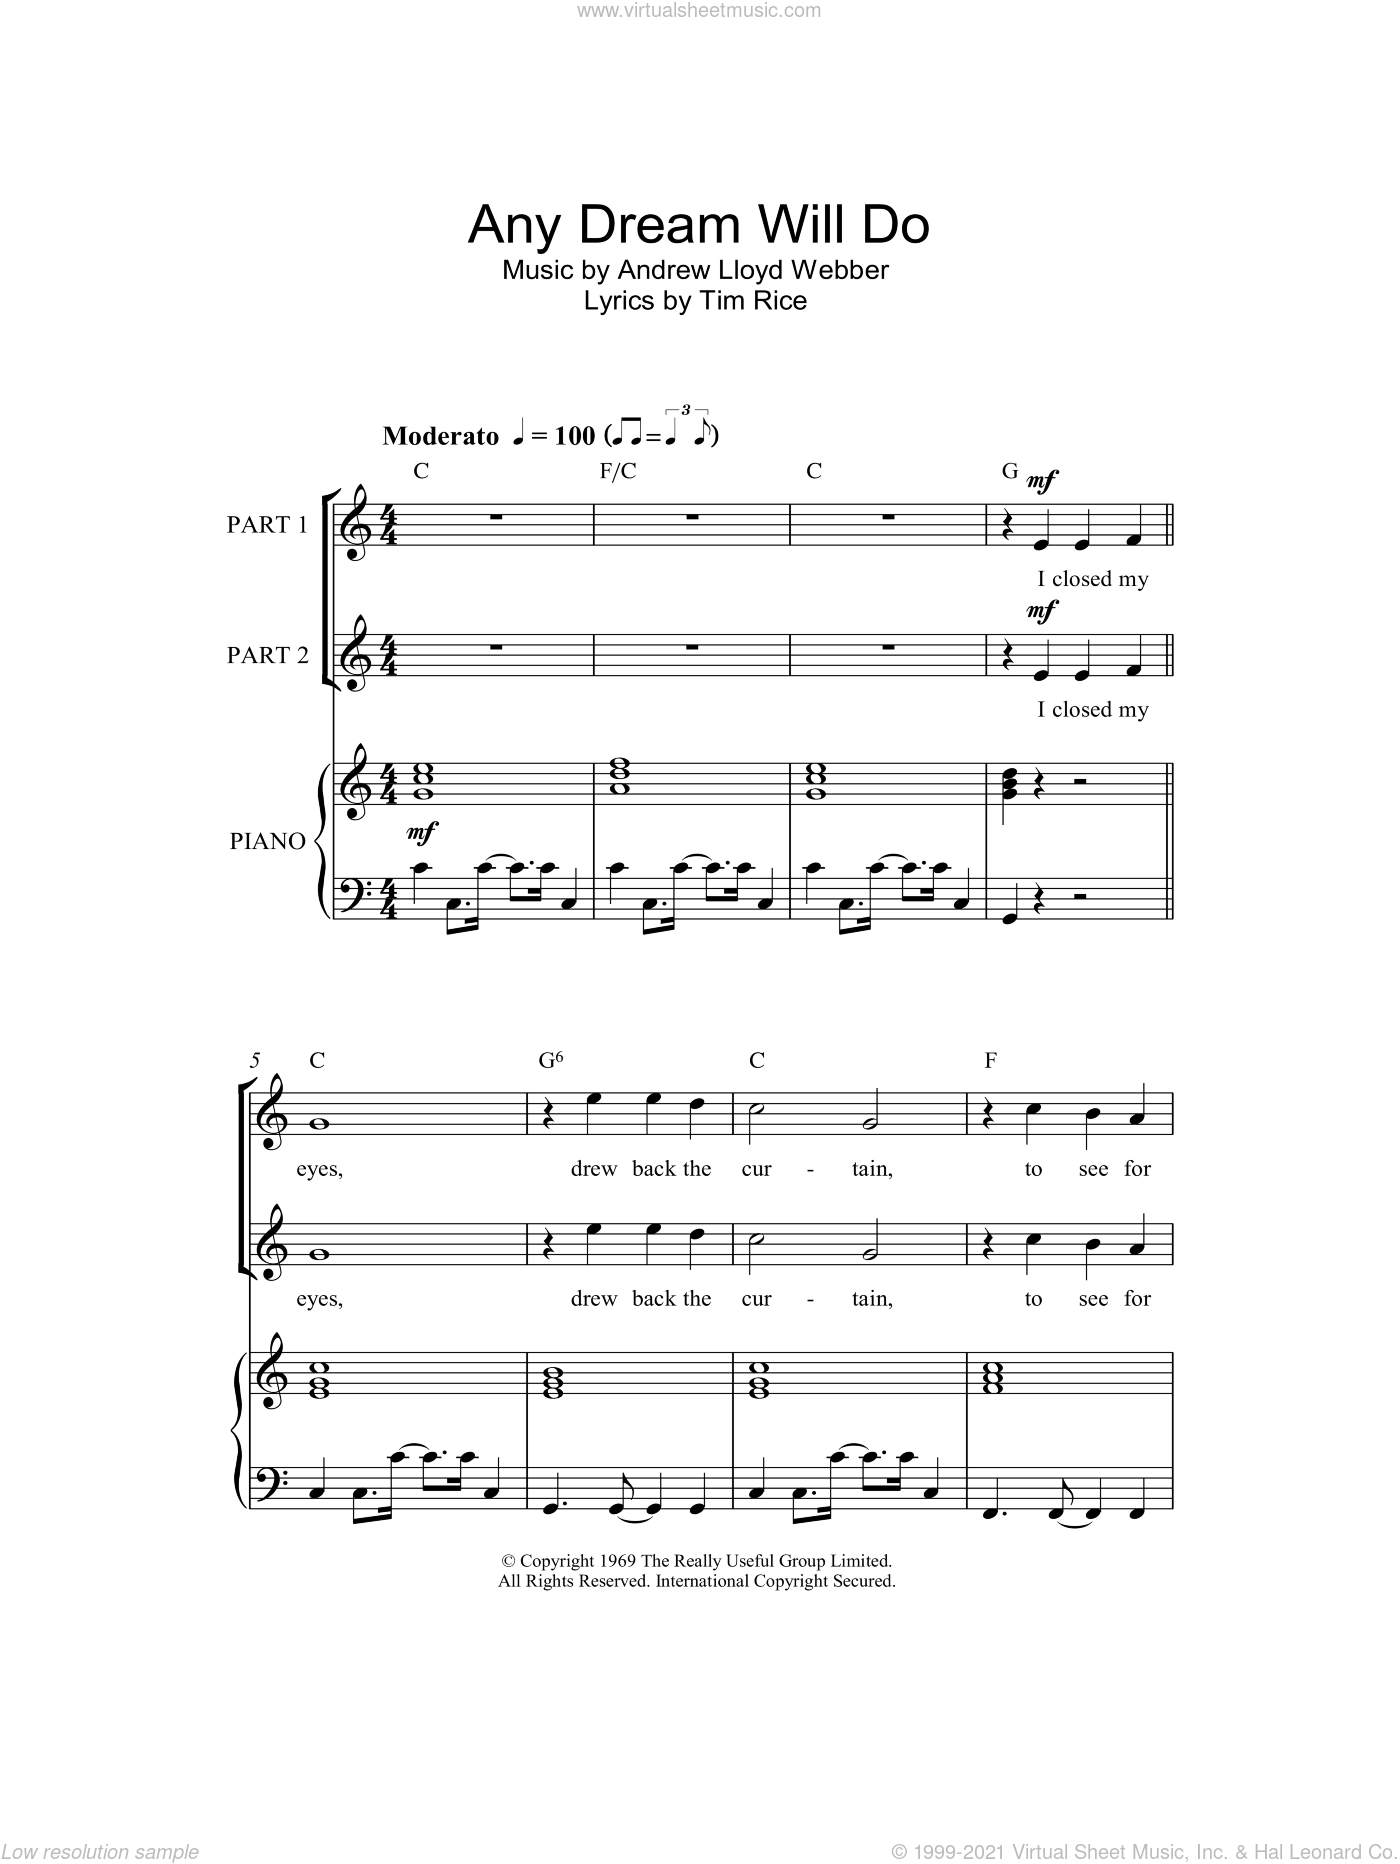 Any Dream Will Do sheet music for choir (2-Part) by Andrew Lloyd Webber and Tim Rice, intermediate duet